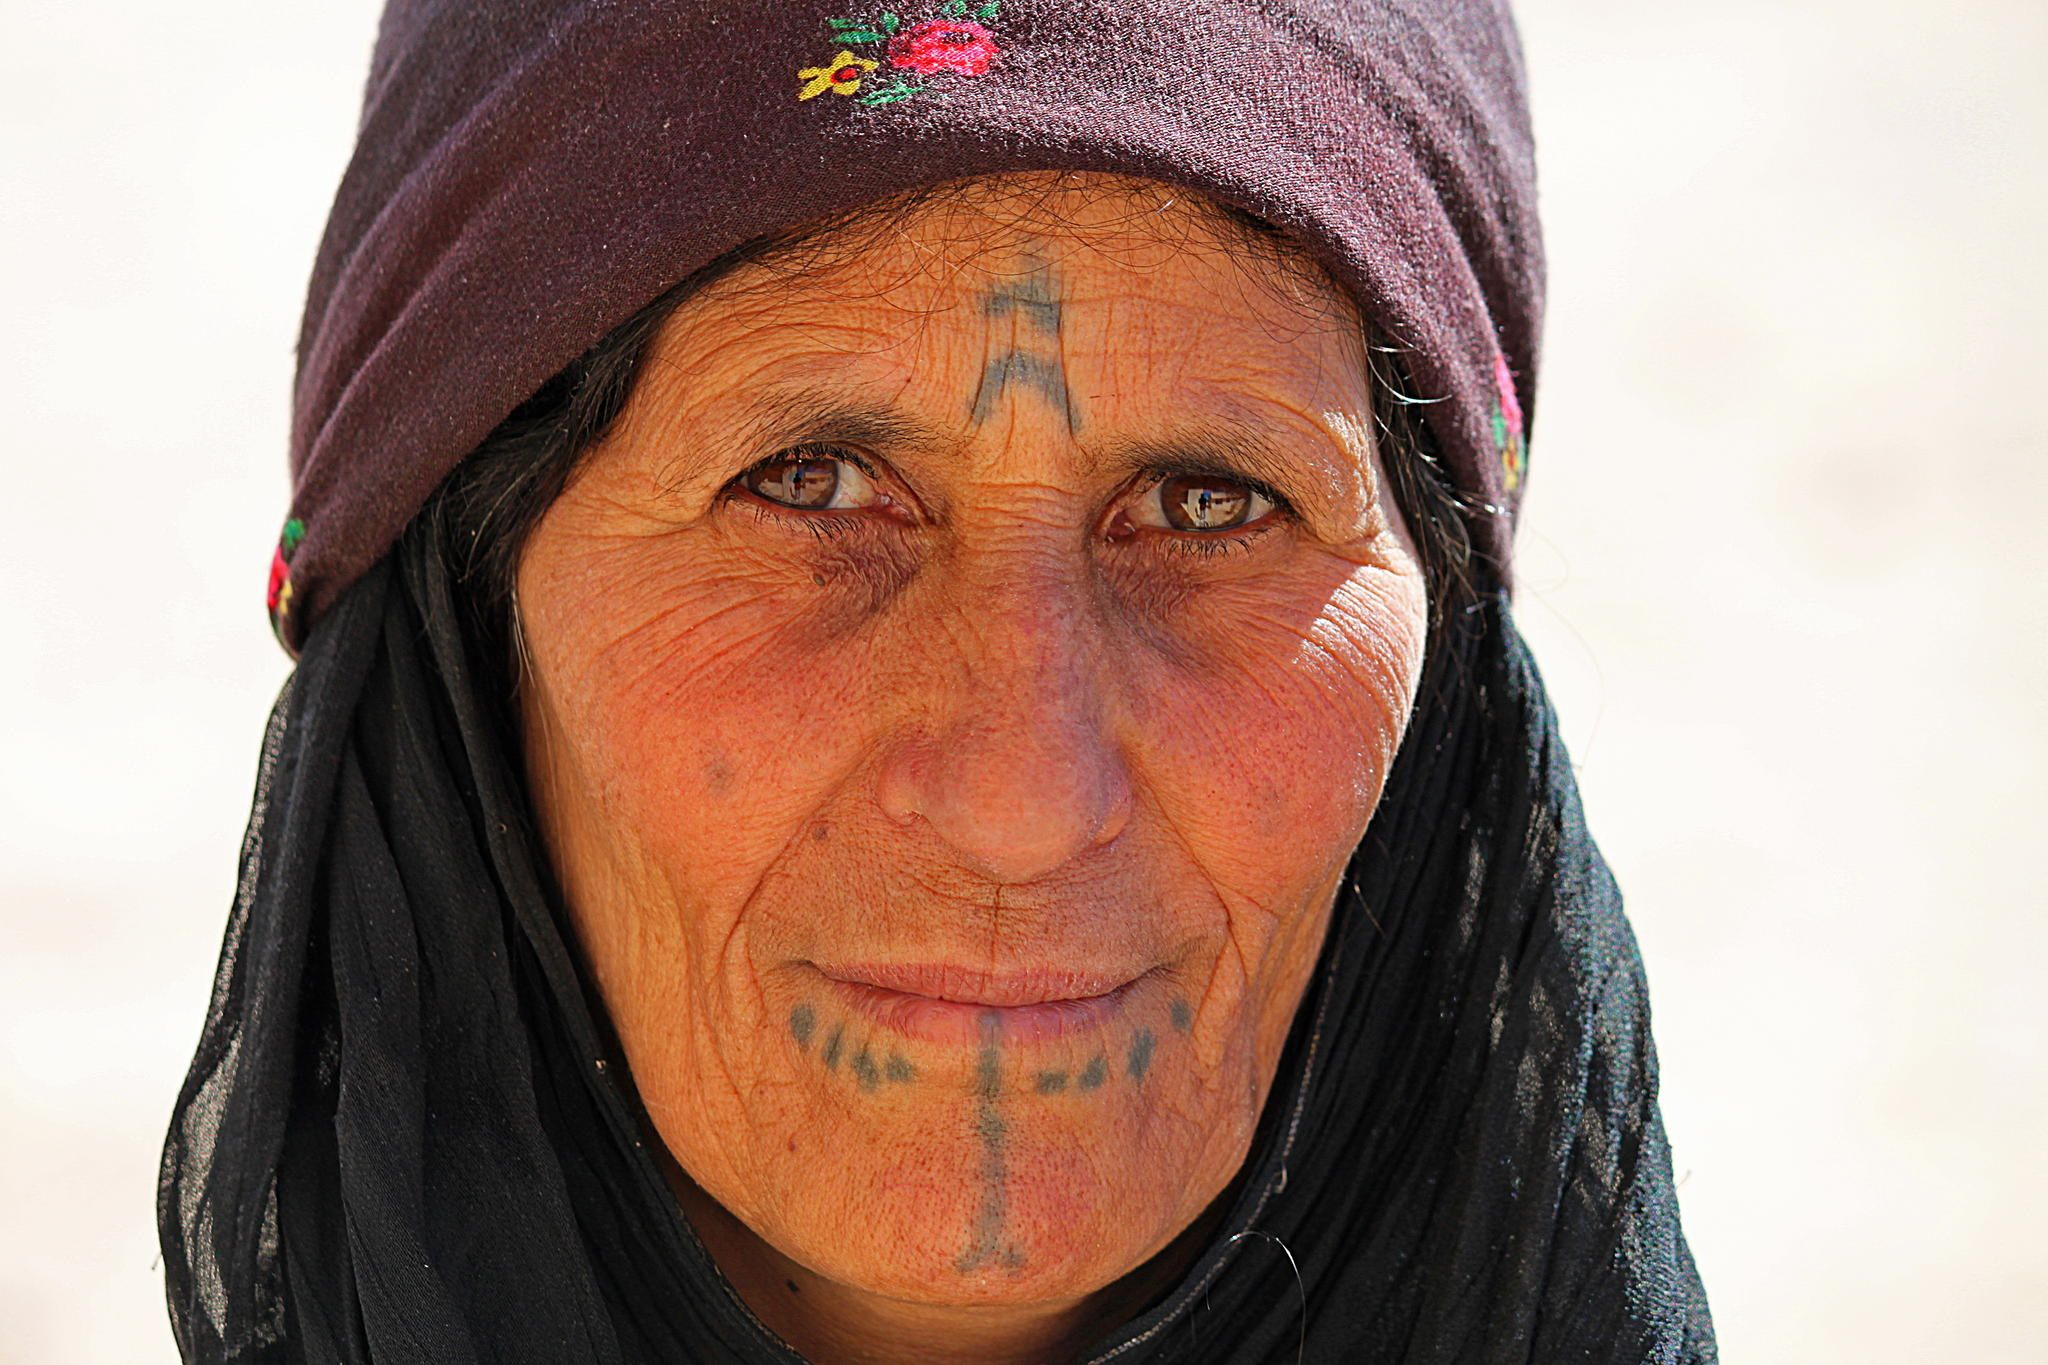 1189a44efadee Bedouin Grandmother by RawRisqArt (Rawan Risheq) on 500px | FACES ...